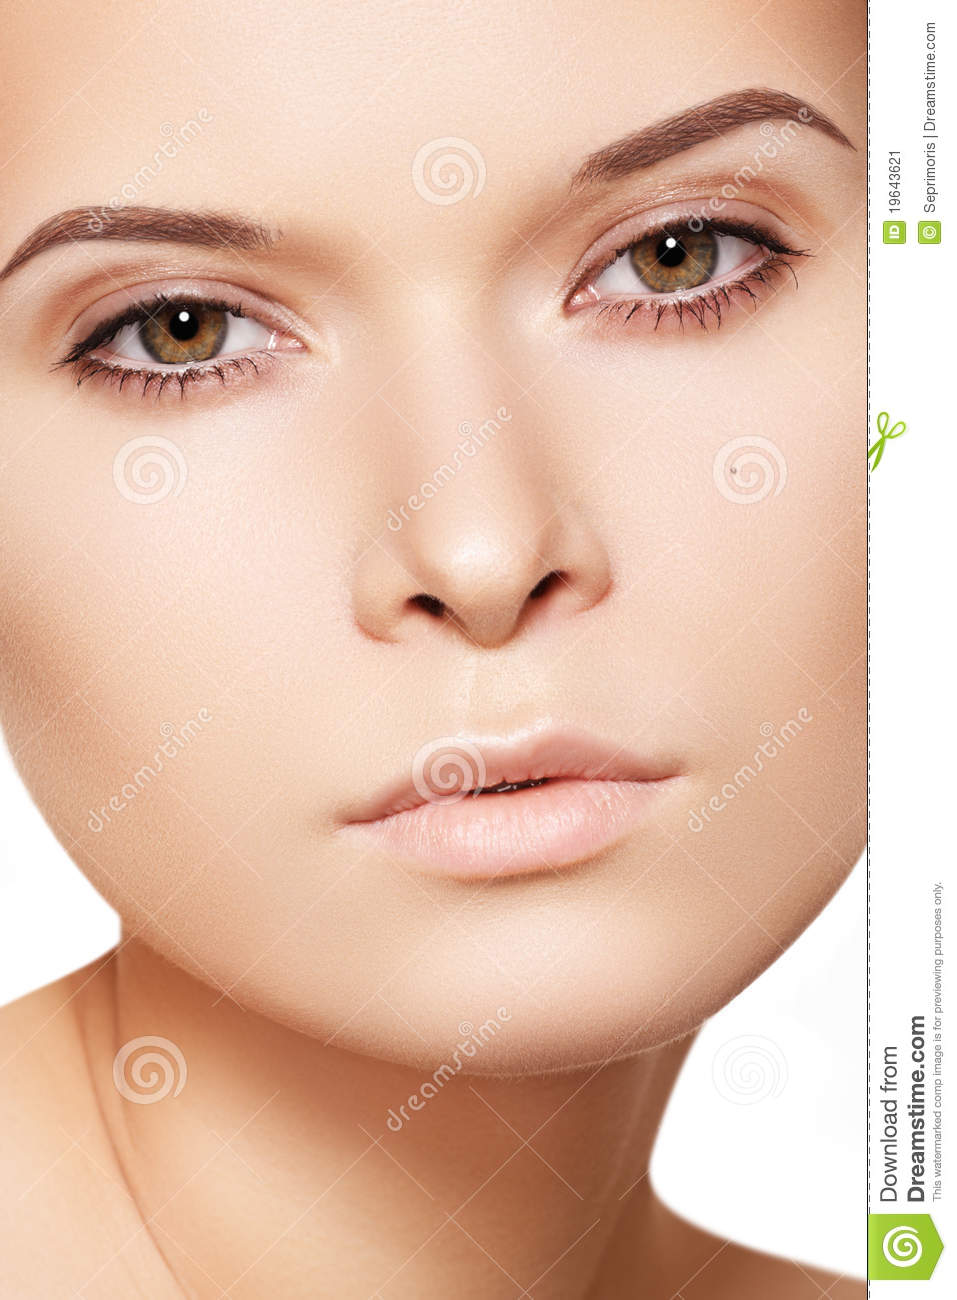 Does Natural healthy facial skin amazing